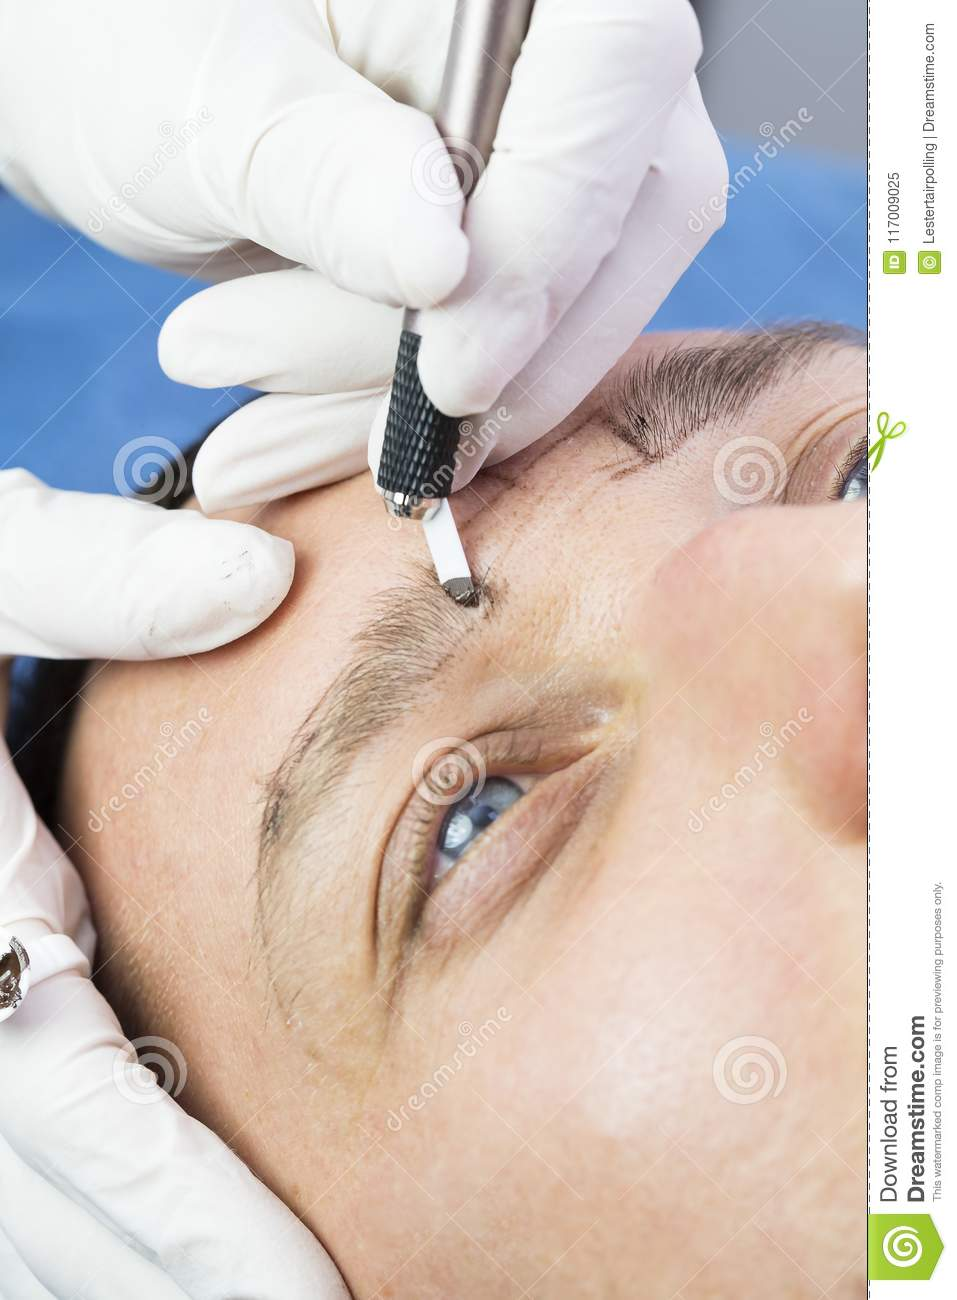 Microblading Eyebrows Workflow Stock Image - Image of